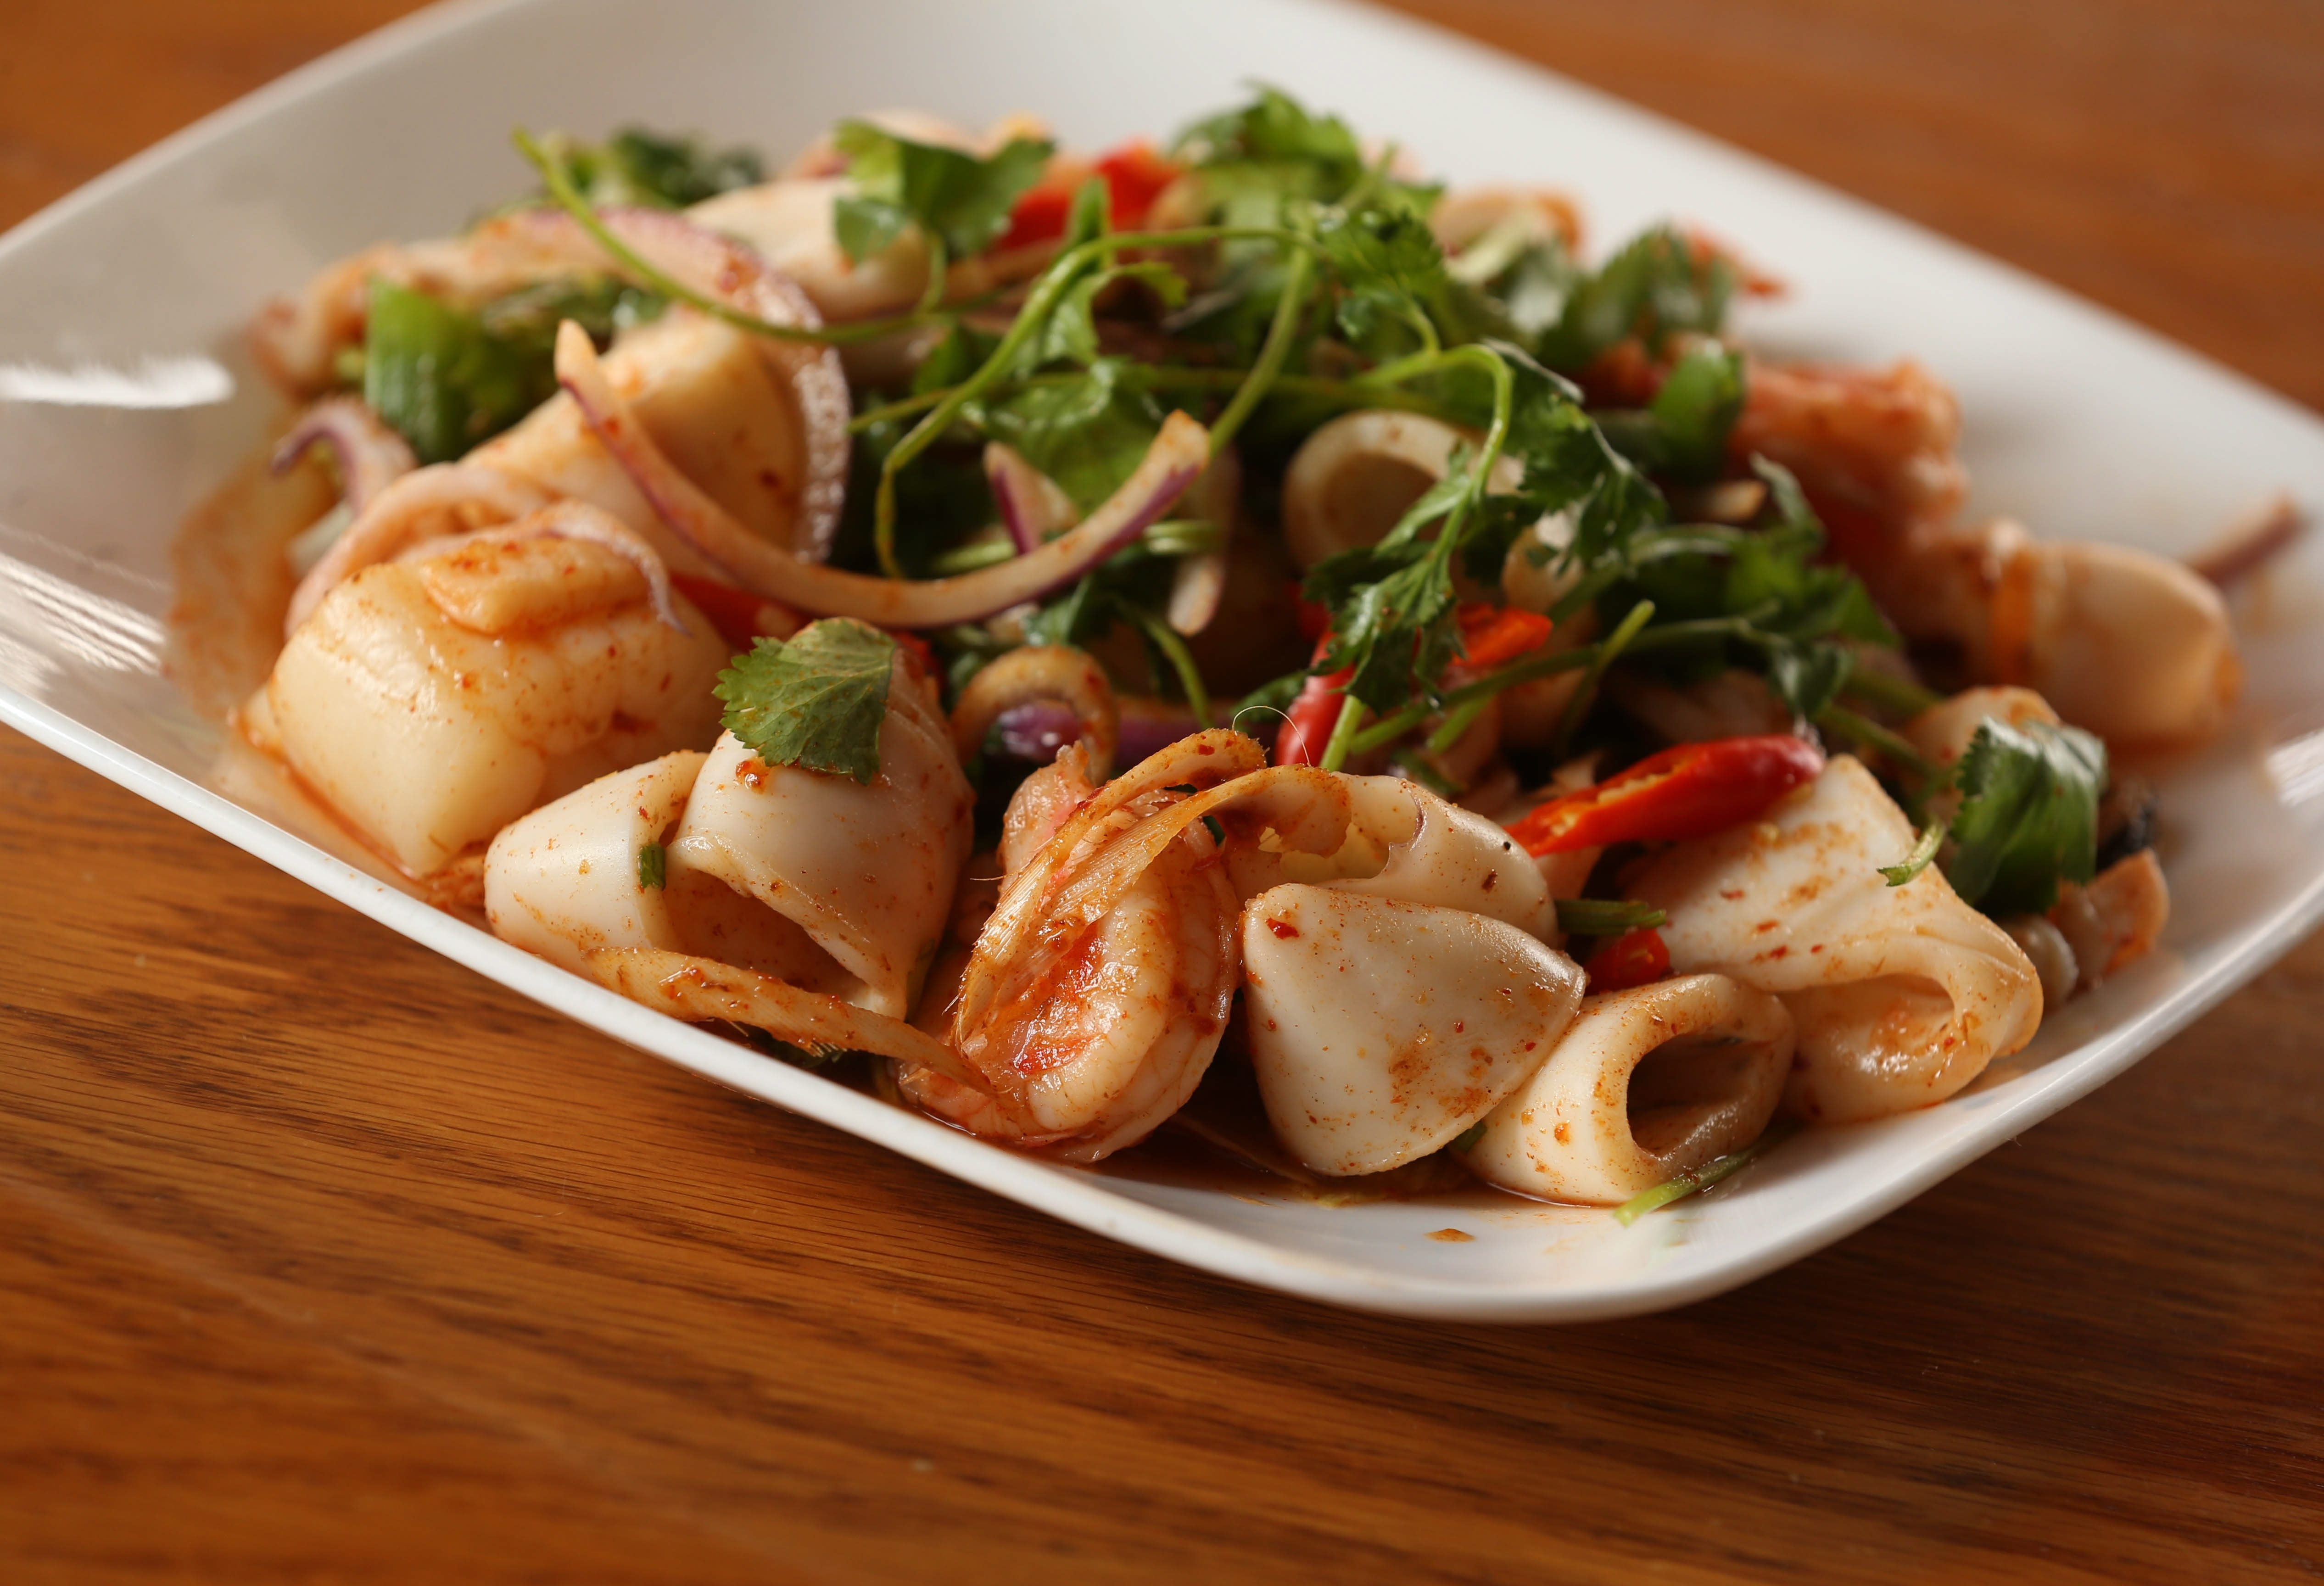 Jasmine Thai at 1330 Niagara Falls Blvd. in the Town of Tonawanda, has been serving their Thai specialties for over 20 years. The yum seafood includes shrimp, scallops, calamari and mussels with onions, lemon grass, chili paste and lime juice.  Photo taken, Tuesday, July 5, 2016.  (Sharon Cantillon/Buffalo News)